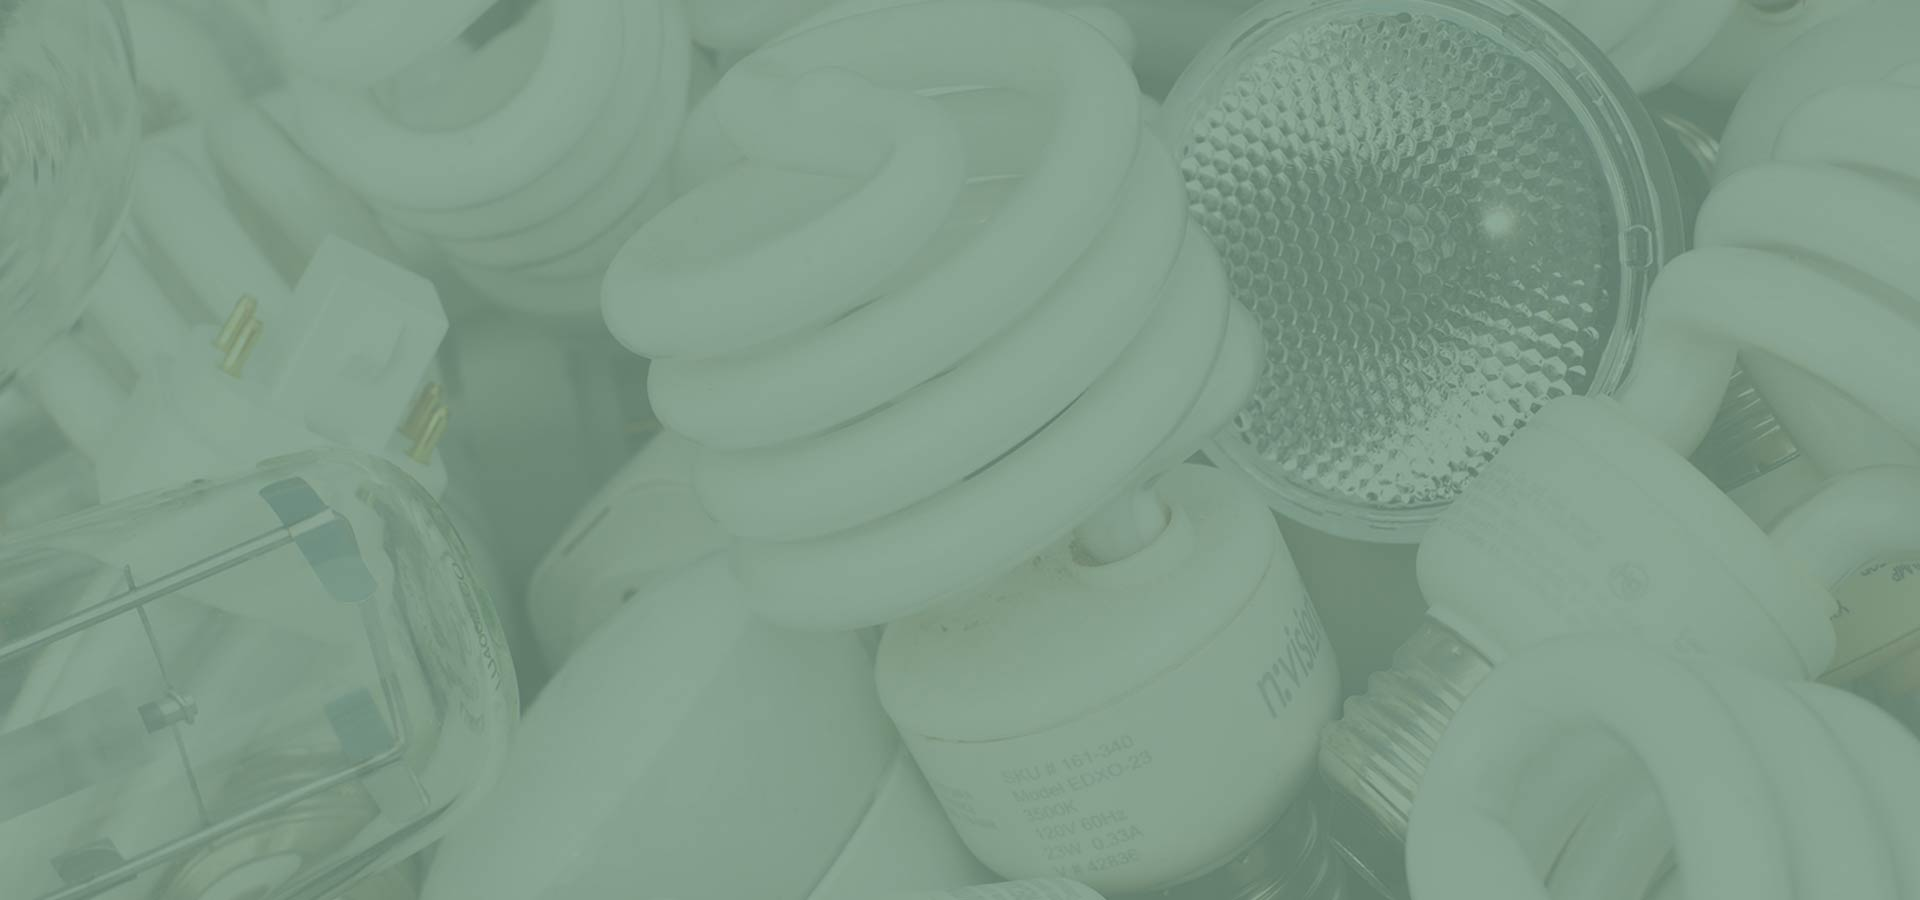 A picture of various mercury containing bulbs including CFLs, halogens, high pressure sodium, and pin lamps. NLR recycles lamps, bulbs, and fluorescent lights.